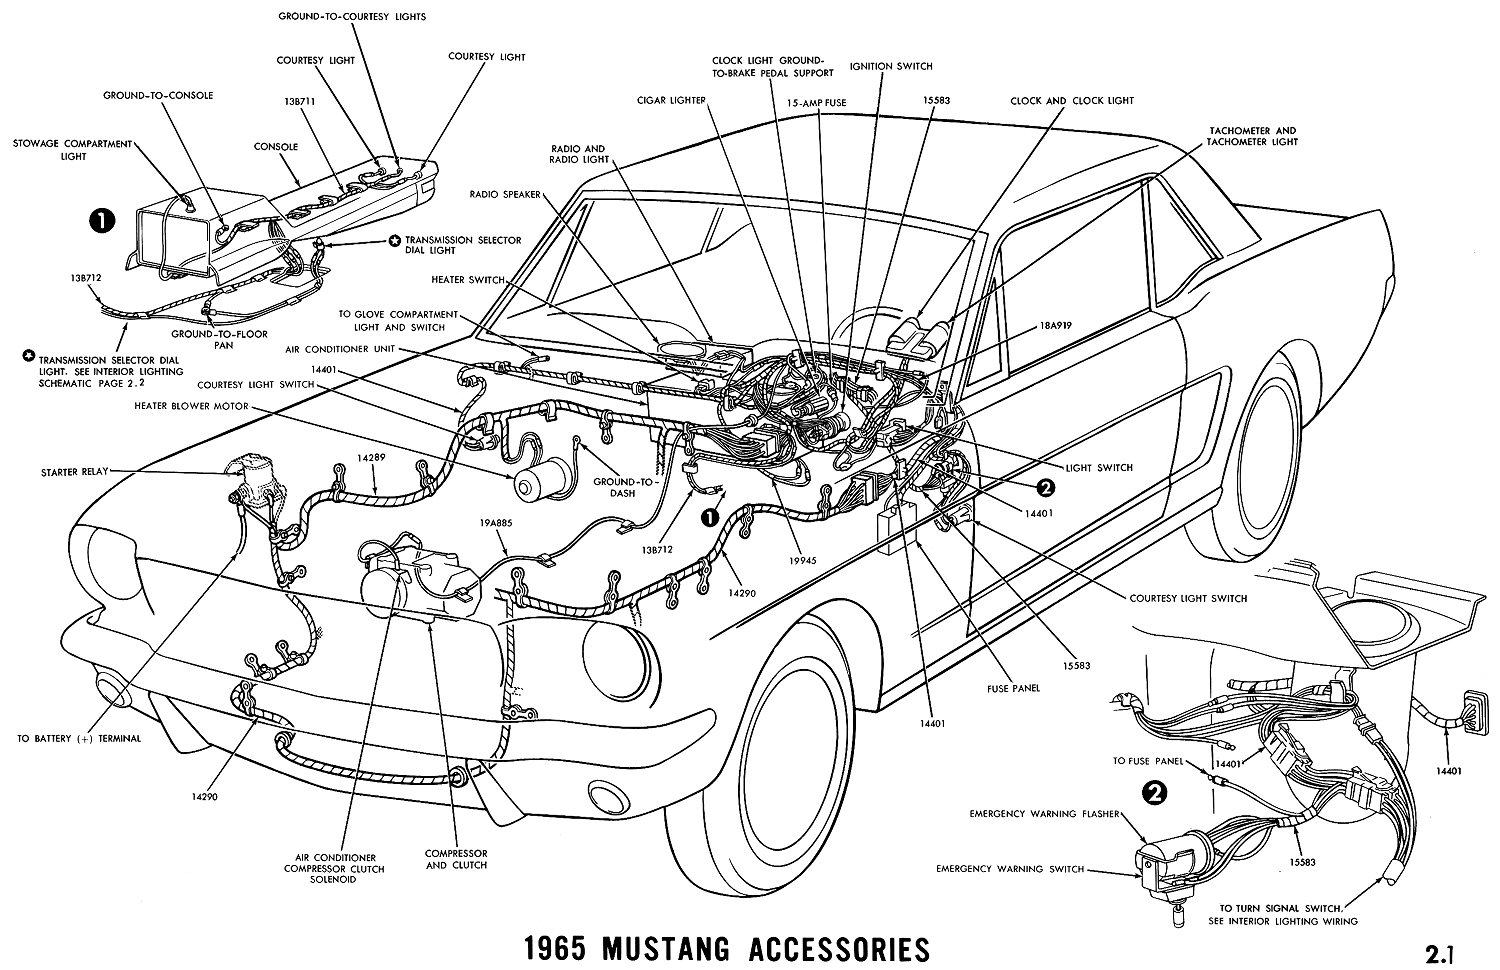 1965h 1965 mustang wiring diagrams average joe restoration 65 mustang tail light wiring diagram at crackthecode.co